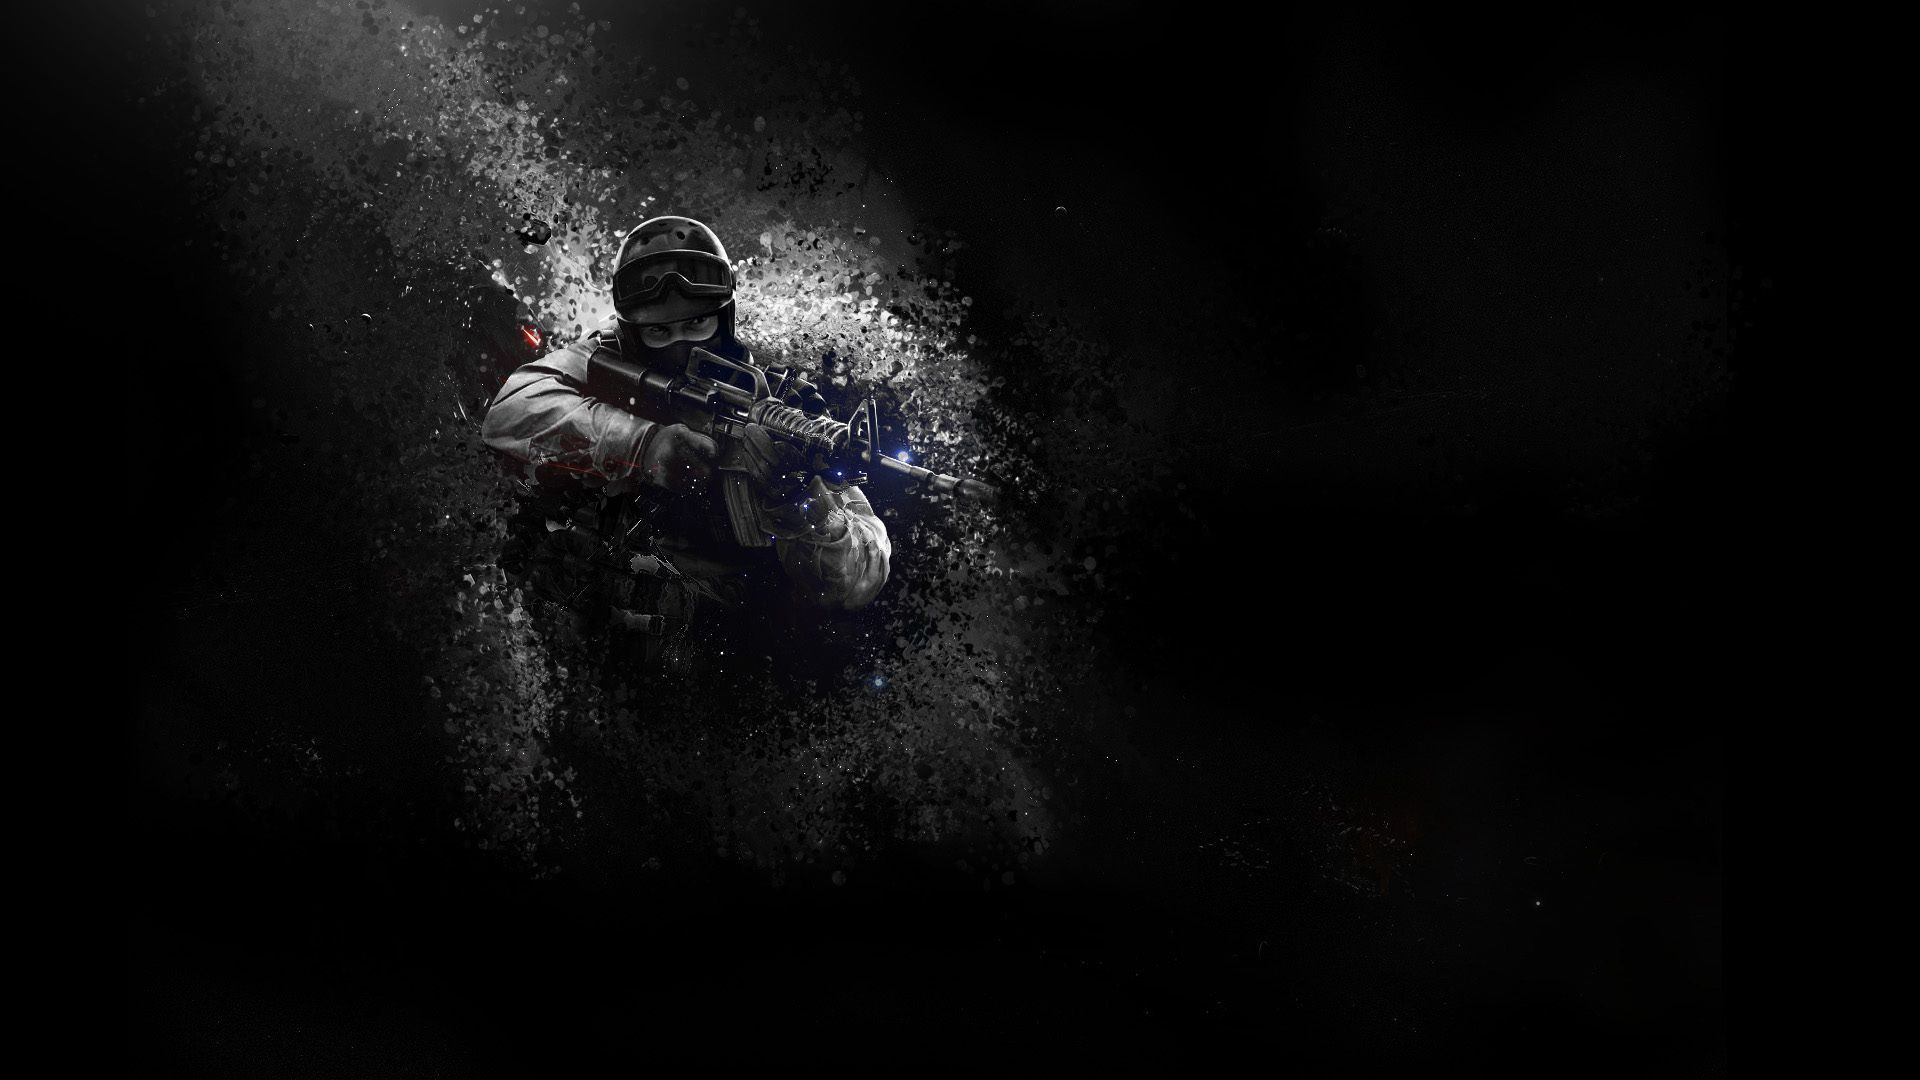 Counter strike global offensive wallpaper desktop nexus wallpaper counter strike global offensive wallpaper desktop nexus wallpaper 1920x1080 325 kb gogolmogol pinterest voltagebd